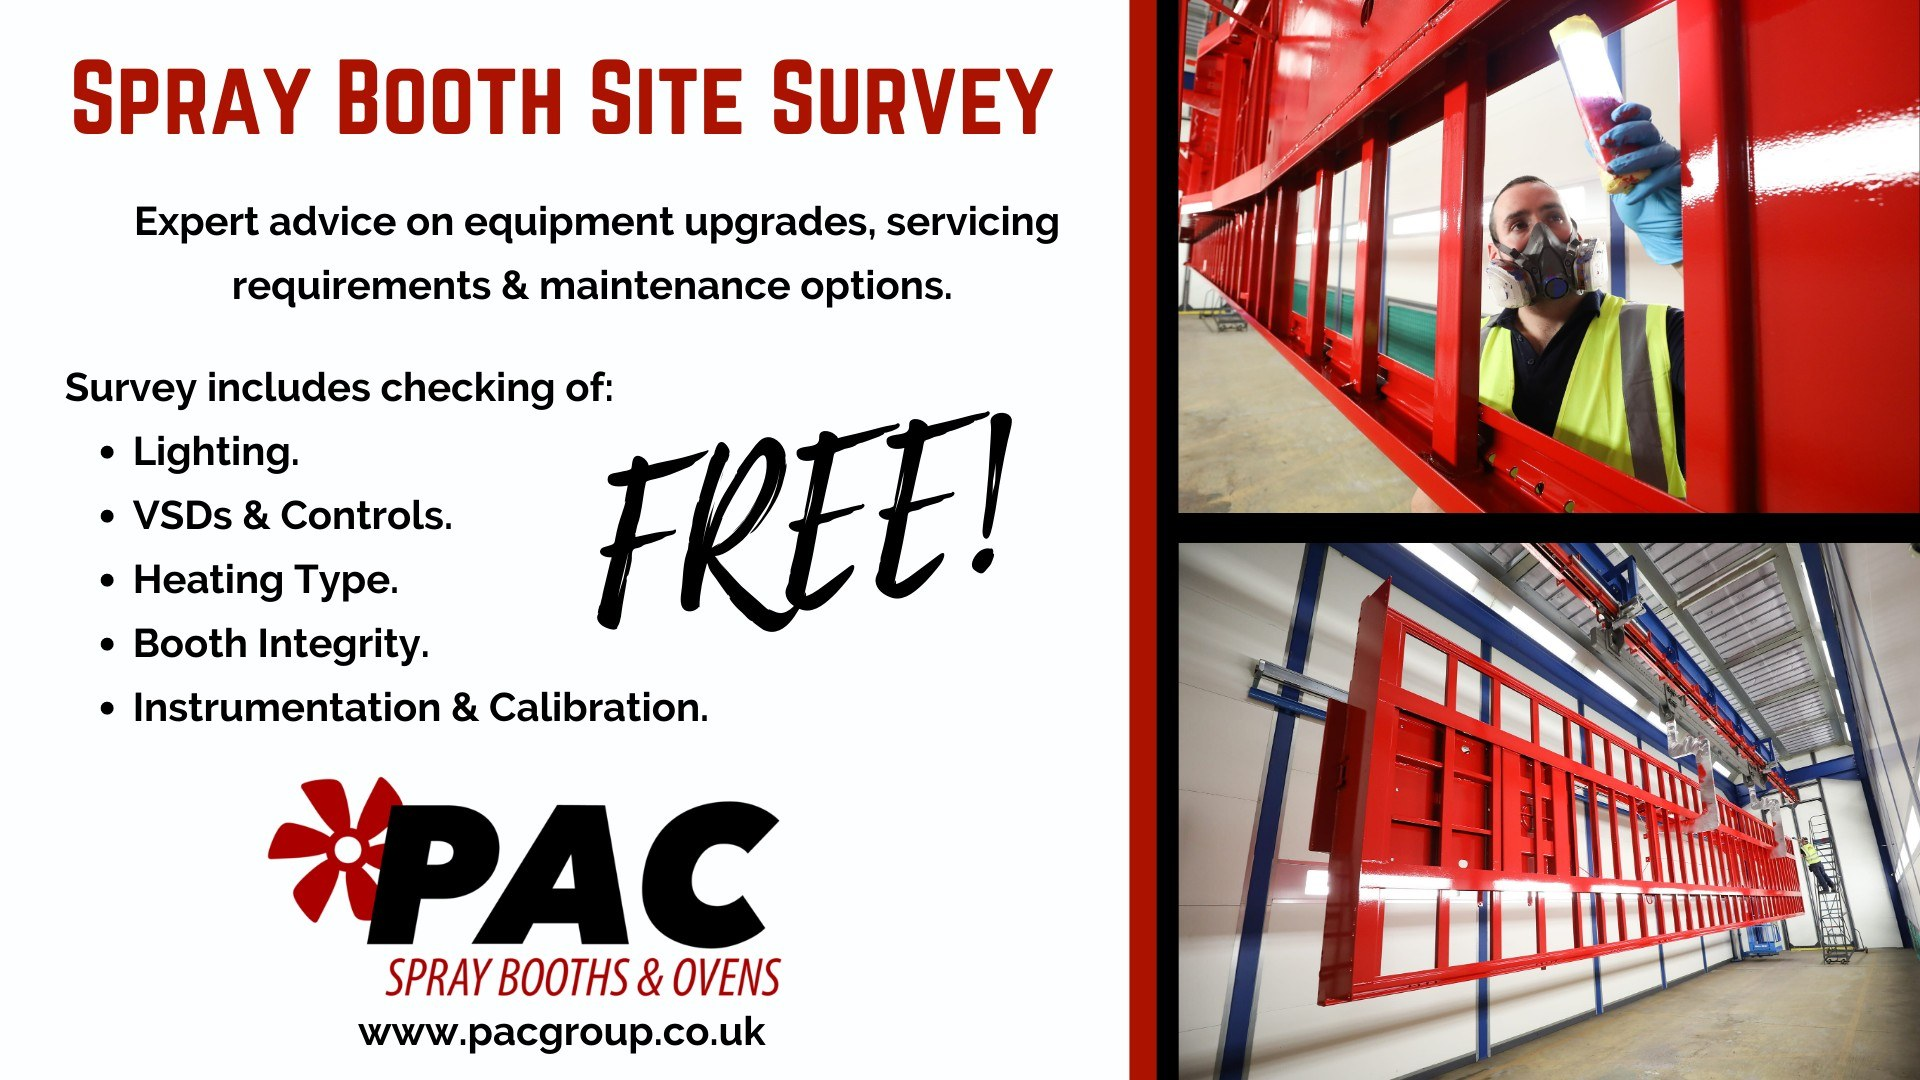 Spray Booth Site Survey Details